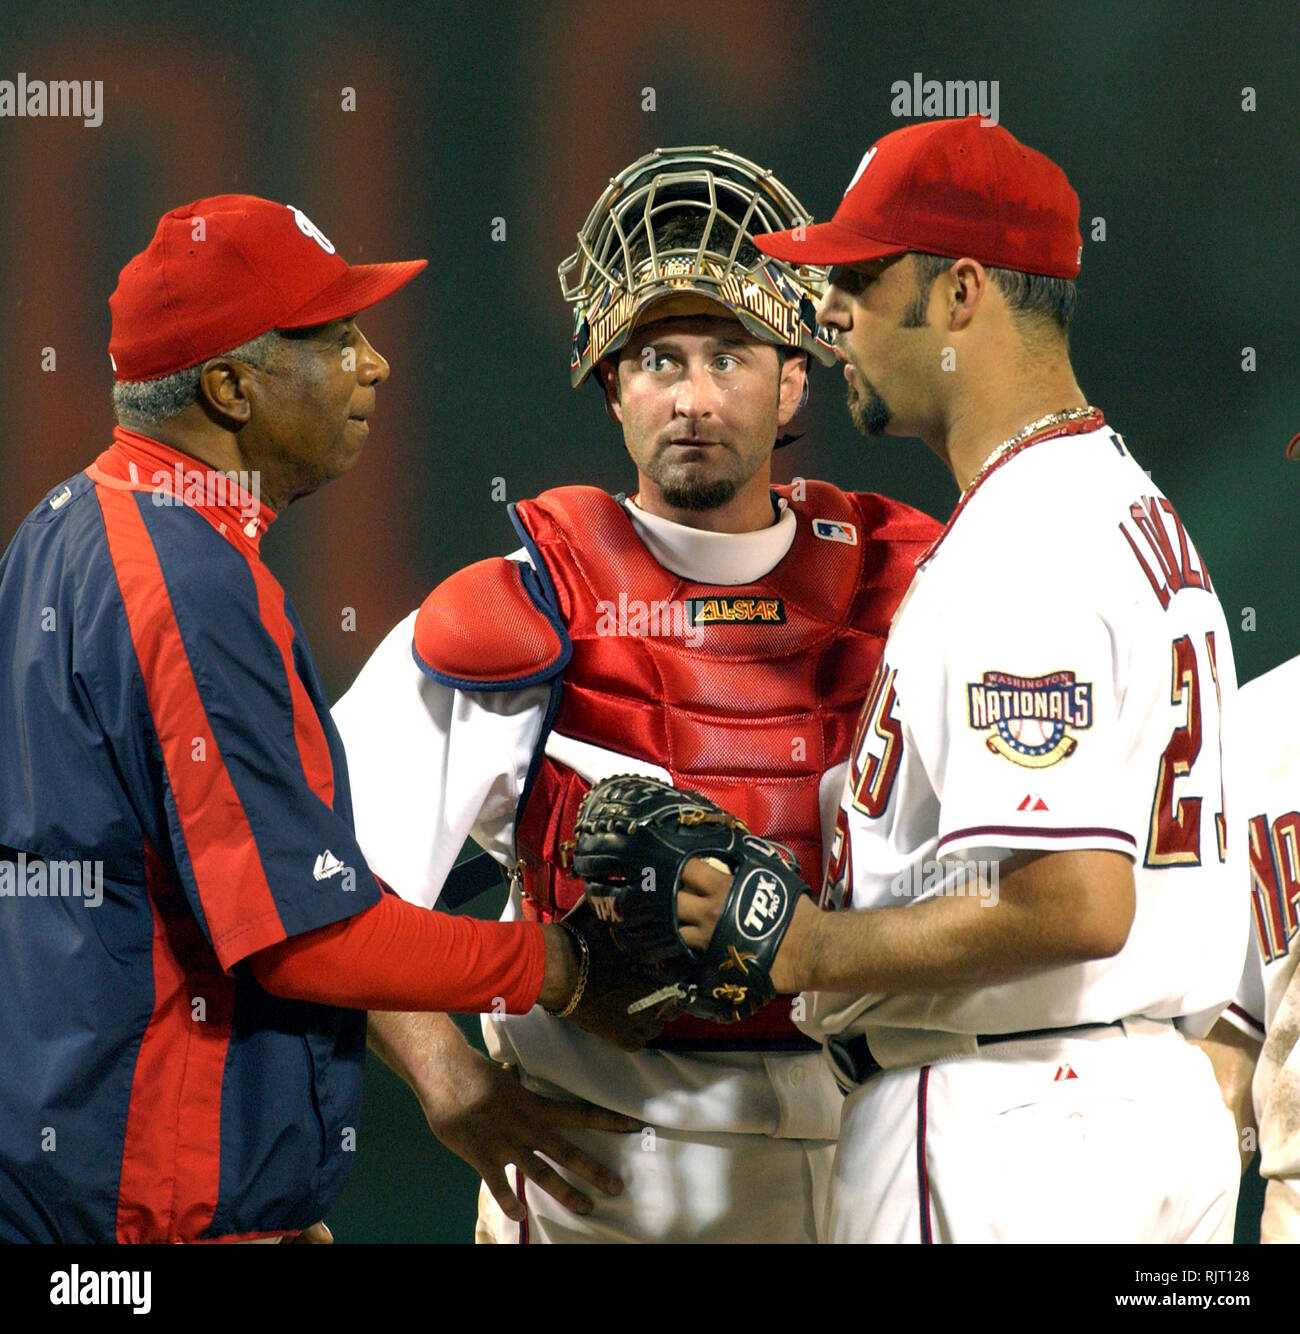 Washington, DC - July 5, 2005 -- Washington Nationals manager Frank Robinson, left, congratulates starting pitcher Esteban Loaiza (21), right, as he removes him for a relief pitcher in the ninth inning against the New York Mets at RFK Stadium in Washington, DC on July 5, 2005. Nationals catcher Brian Schneider (23) looks on from center. The Nationals withstood a ninth inning rally and beat the Mets 3 to 2.Credit: Ron Sachs/CNP.(RESTRICTION: NO New York or New Jersey Newspapers or newspapers within a 75 mile radius of New York City) | usage worldwide - Stock Image